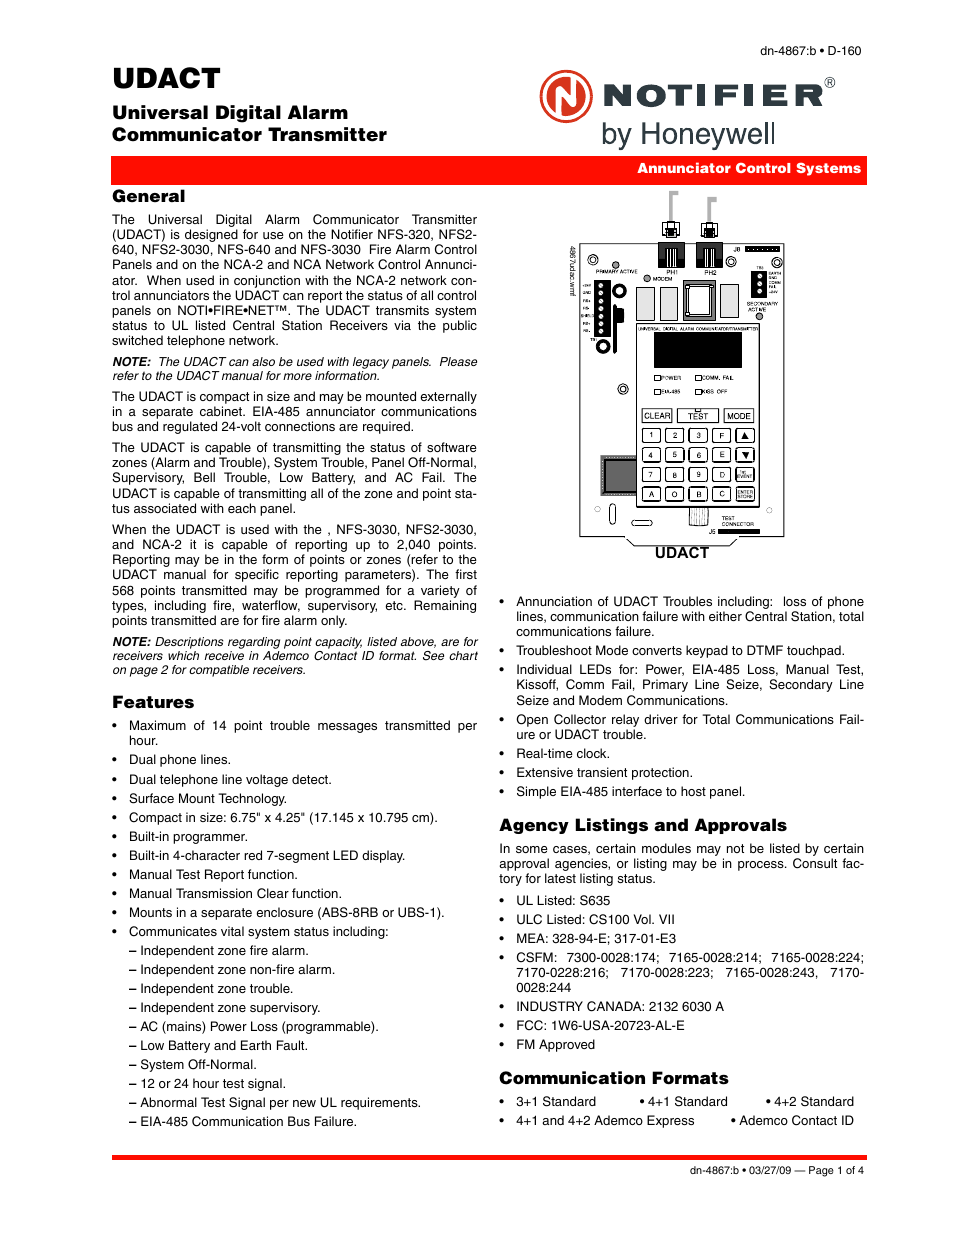 Notifier Fire Alarm Panel Nfs2 3030 Manual